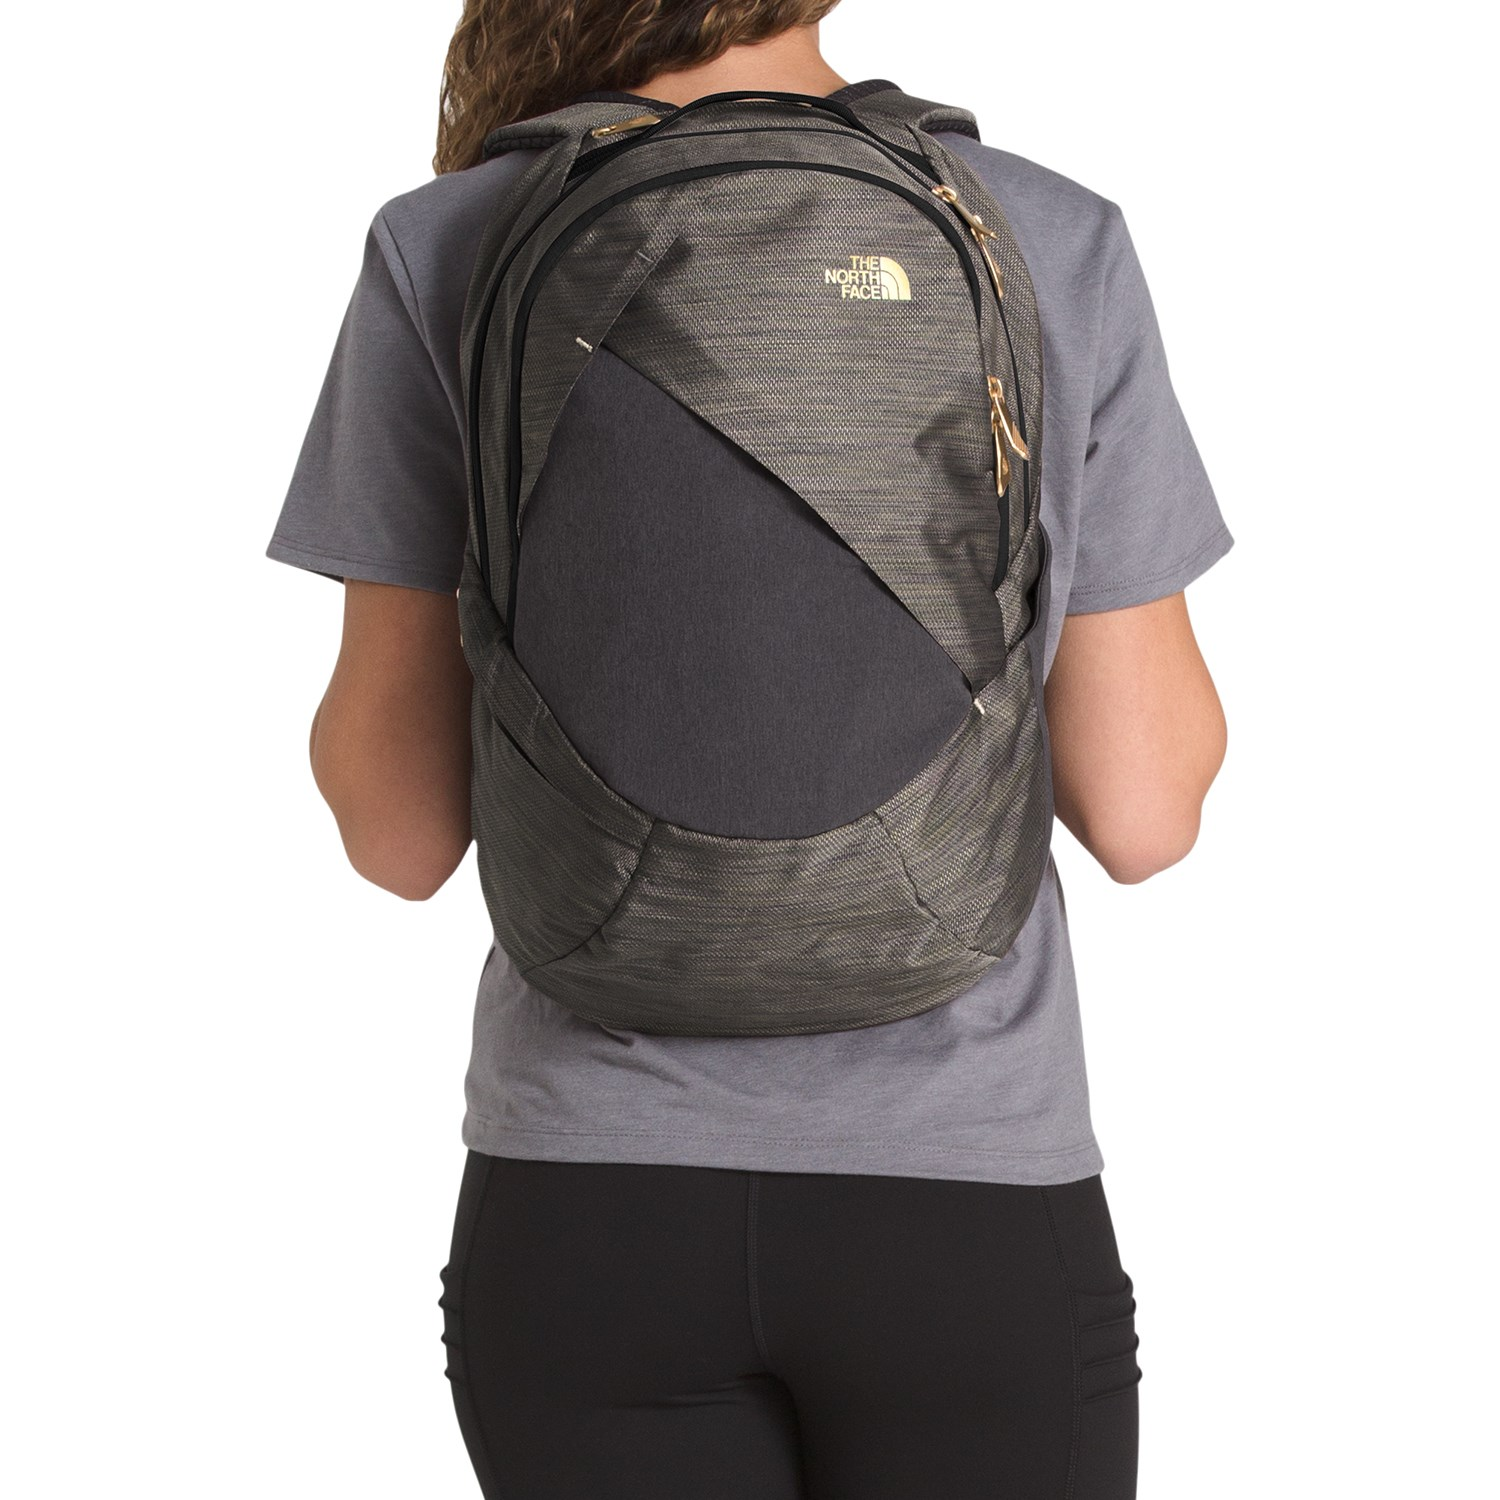 0804aeafa5 The North Face Electra Backpack - Women's | evo